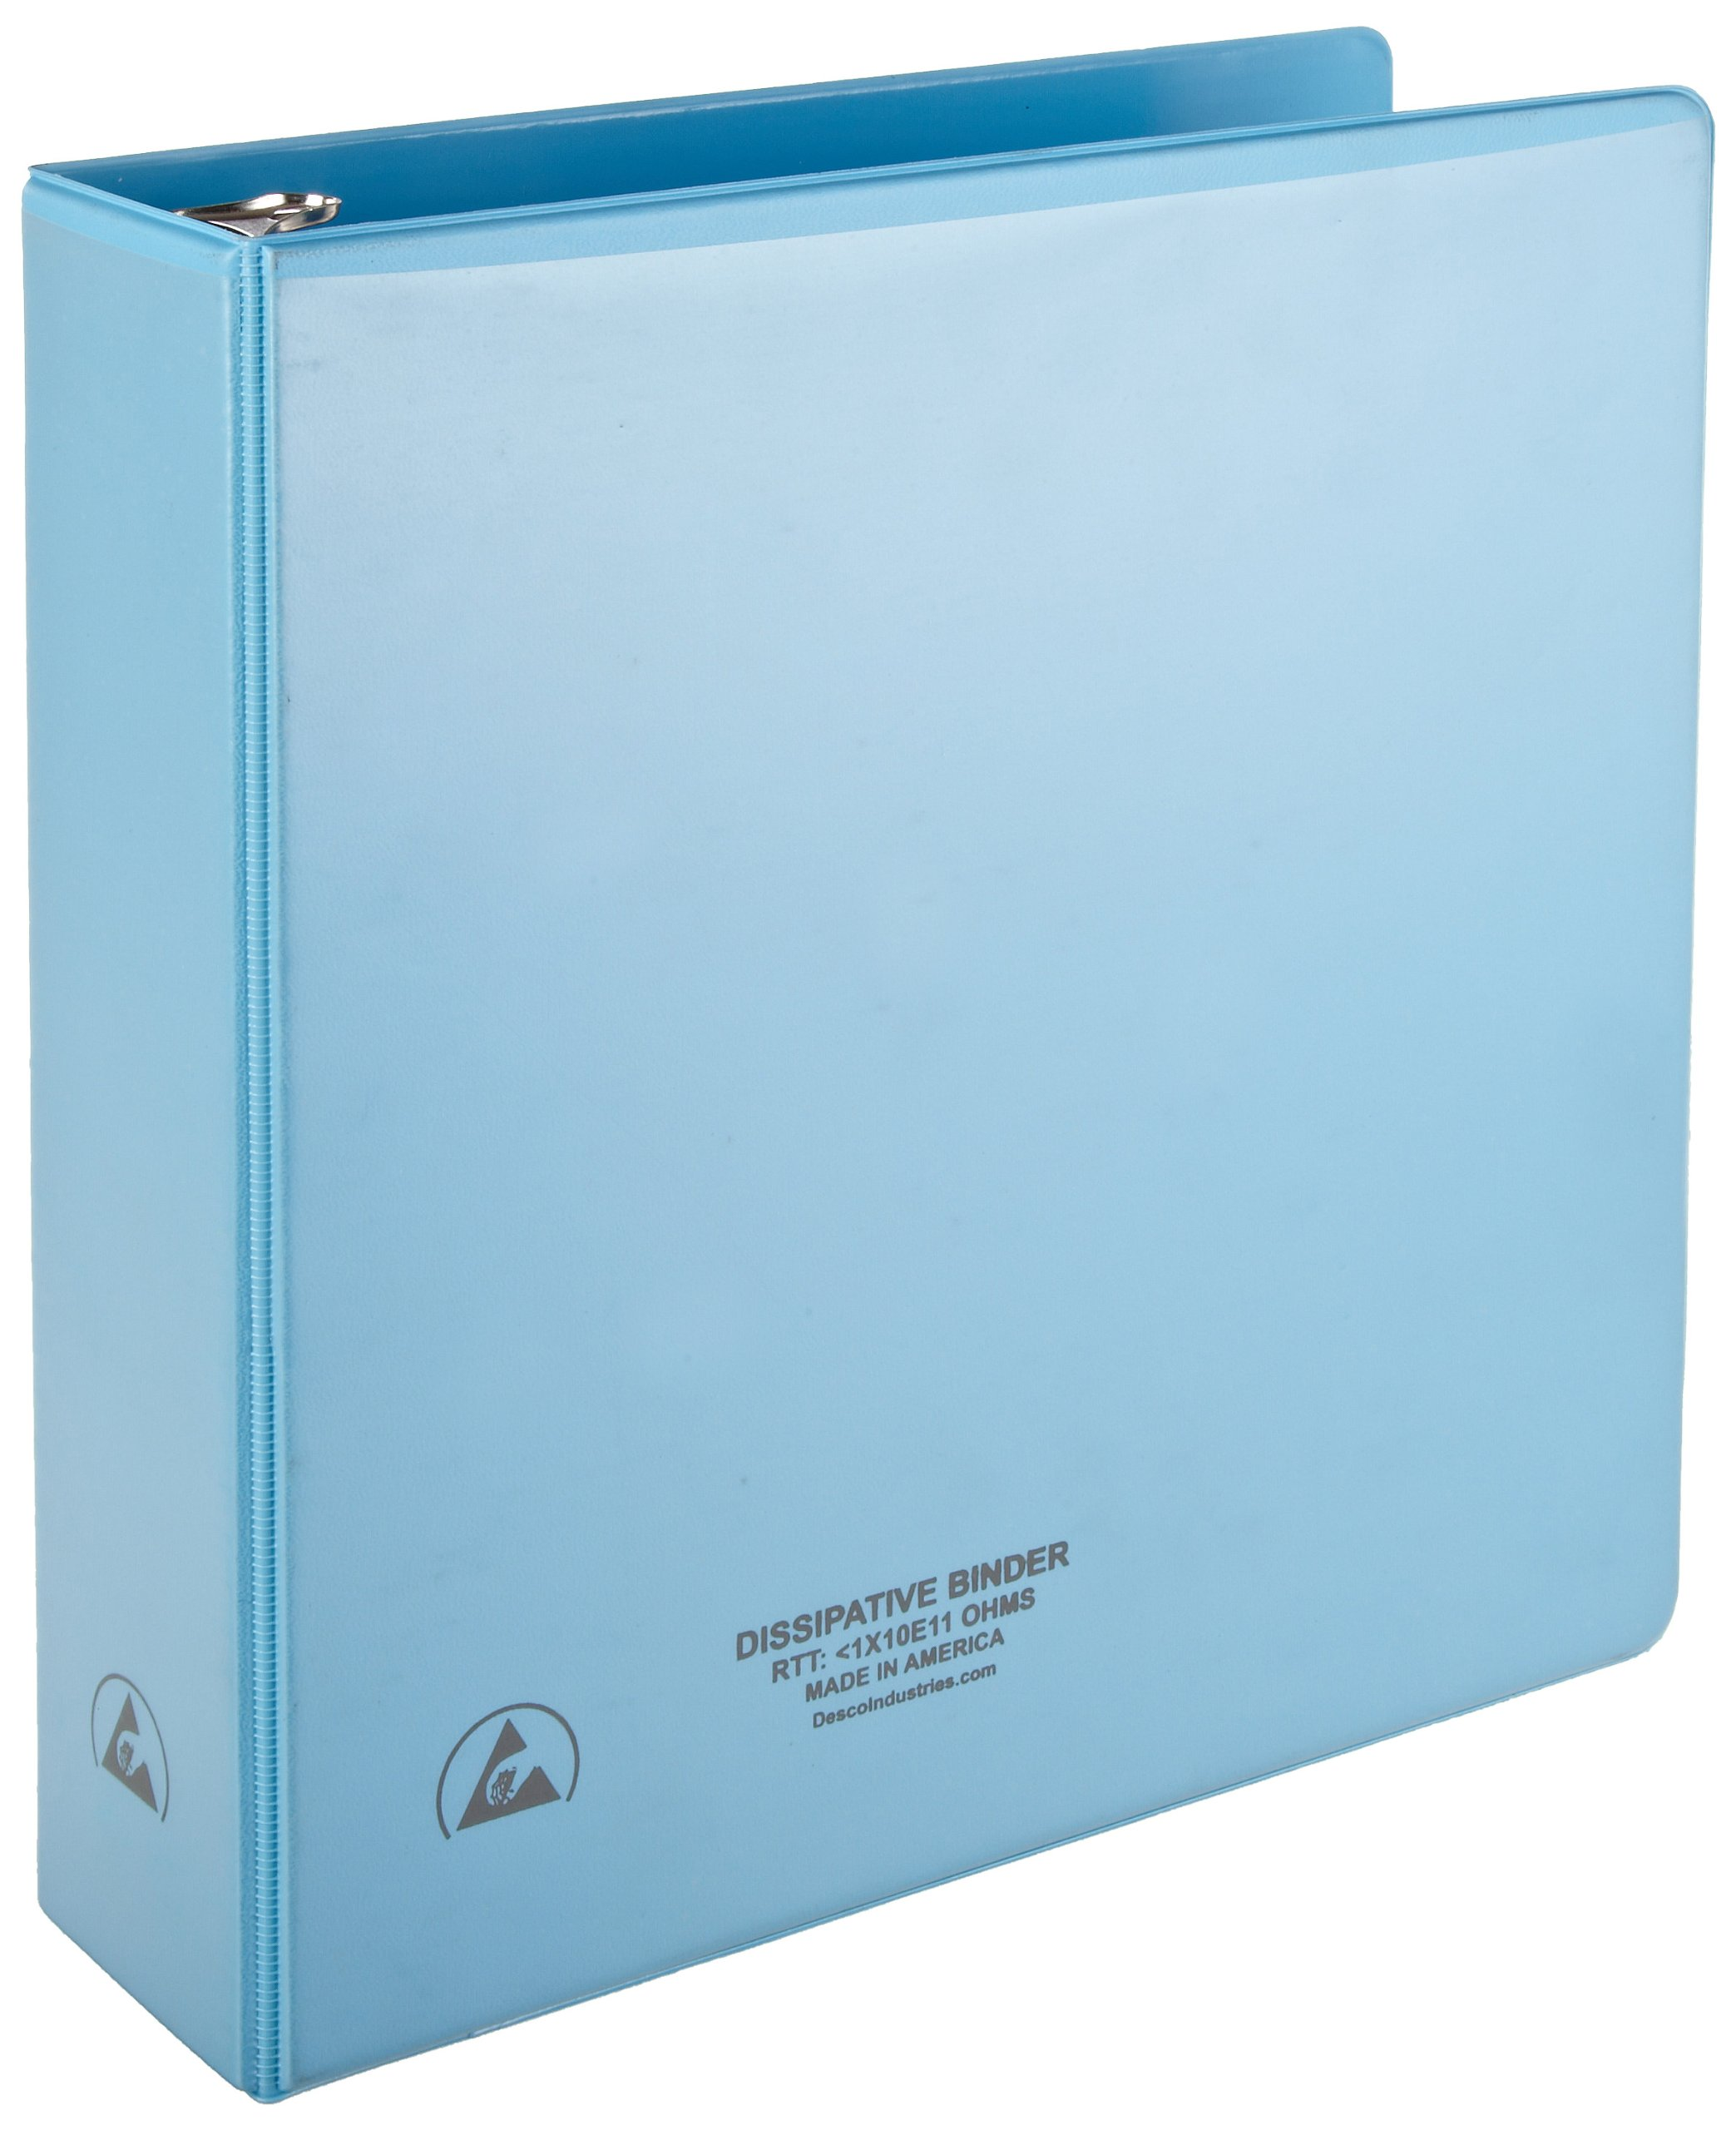 DESCO 7433 Vinyl 3-Ring Static Dissipative Binder with Clear Pocket, 2'' Ring, 2.9'' Spine by Desco